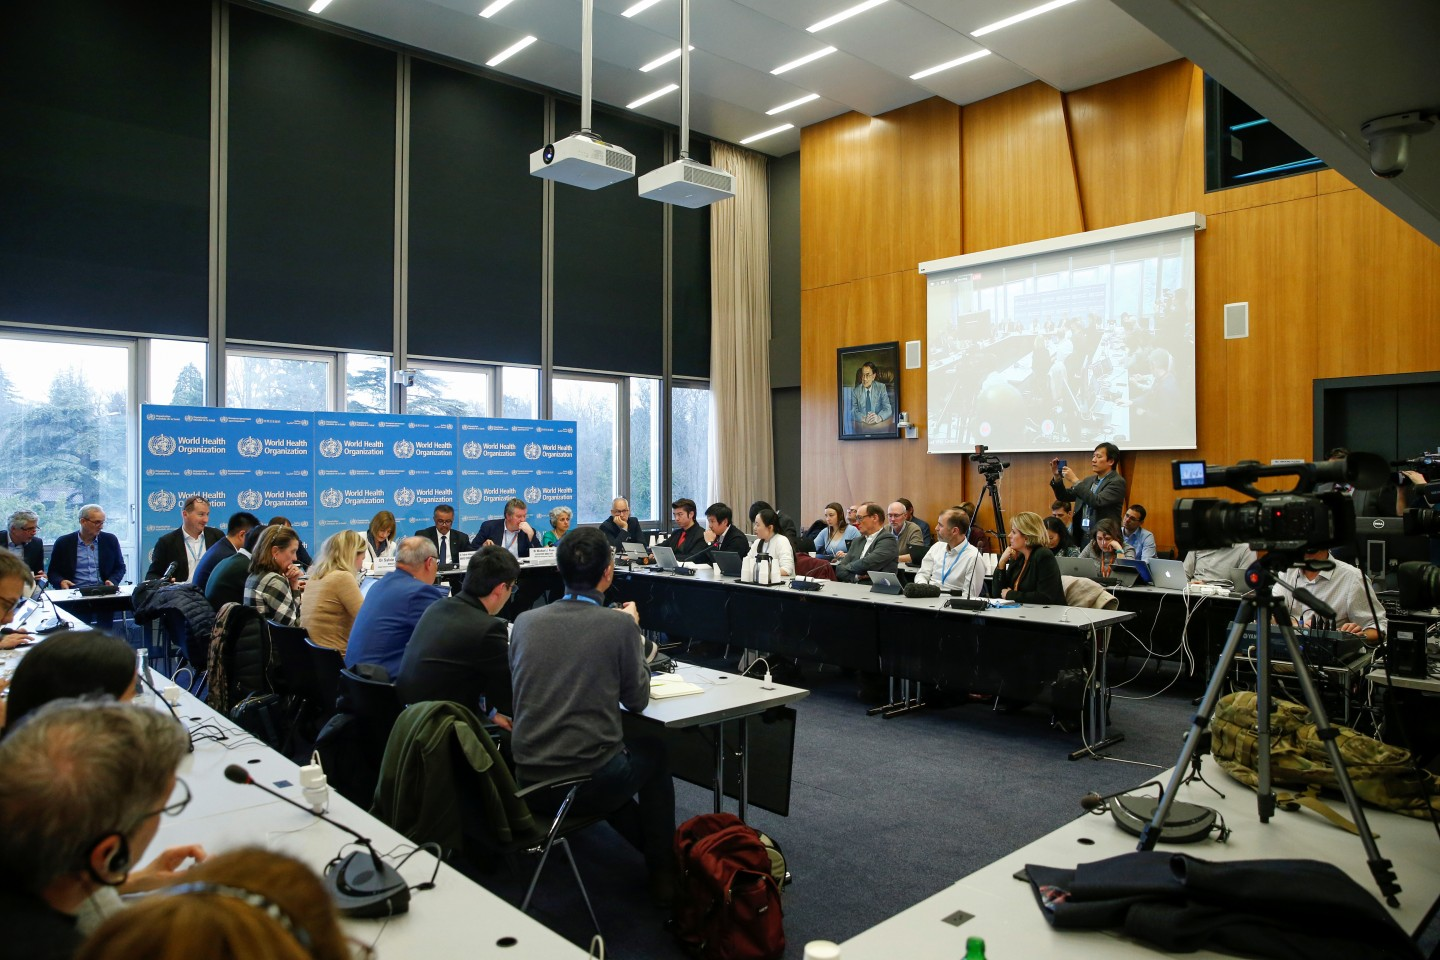 A general view of the World Health Organisation (WHO) news conference on the Covid-19 outbreak in Geneva, Switzerland, on 11 February 2020. Taiwan has not gained membership into the WHO due to China's objection. (Denis Balibouse/Reuters)